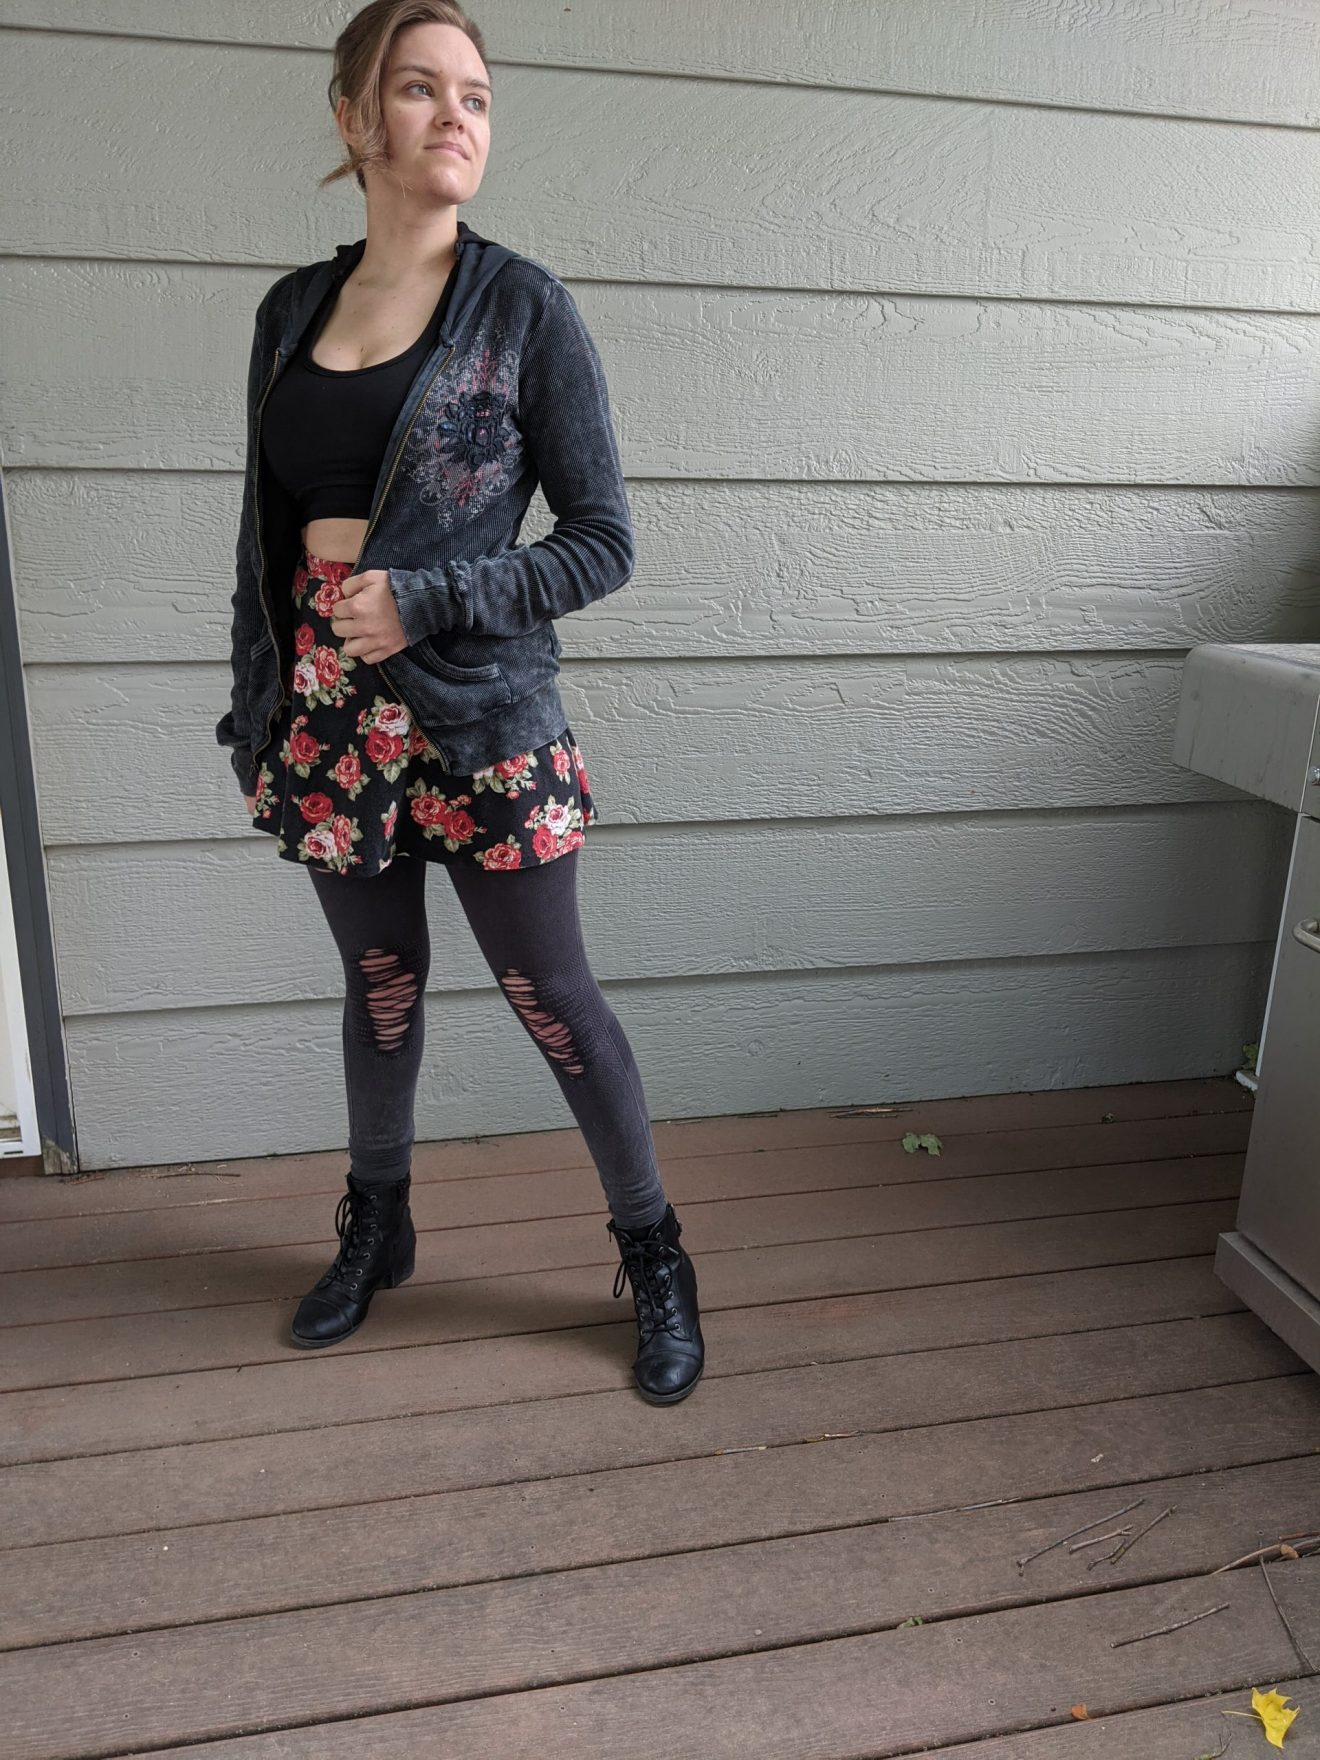 Beautiful Heartache Alissa Ackerman Story Behind The Cloth fashion blog edgy sporty romantic outfit 20 scaled